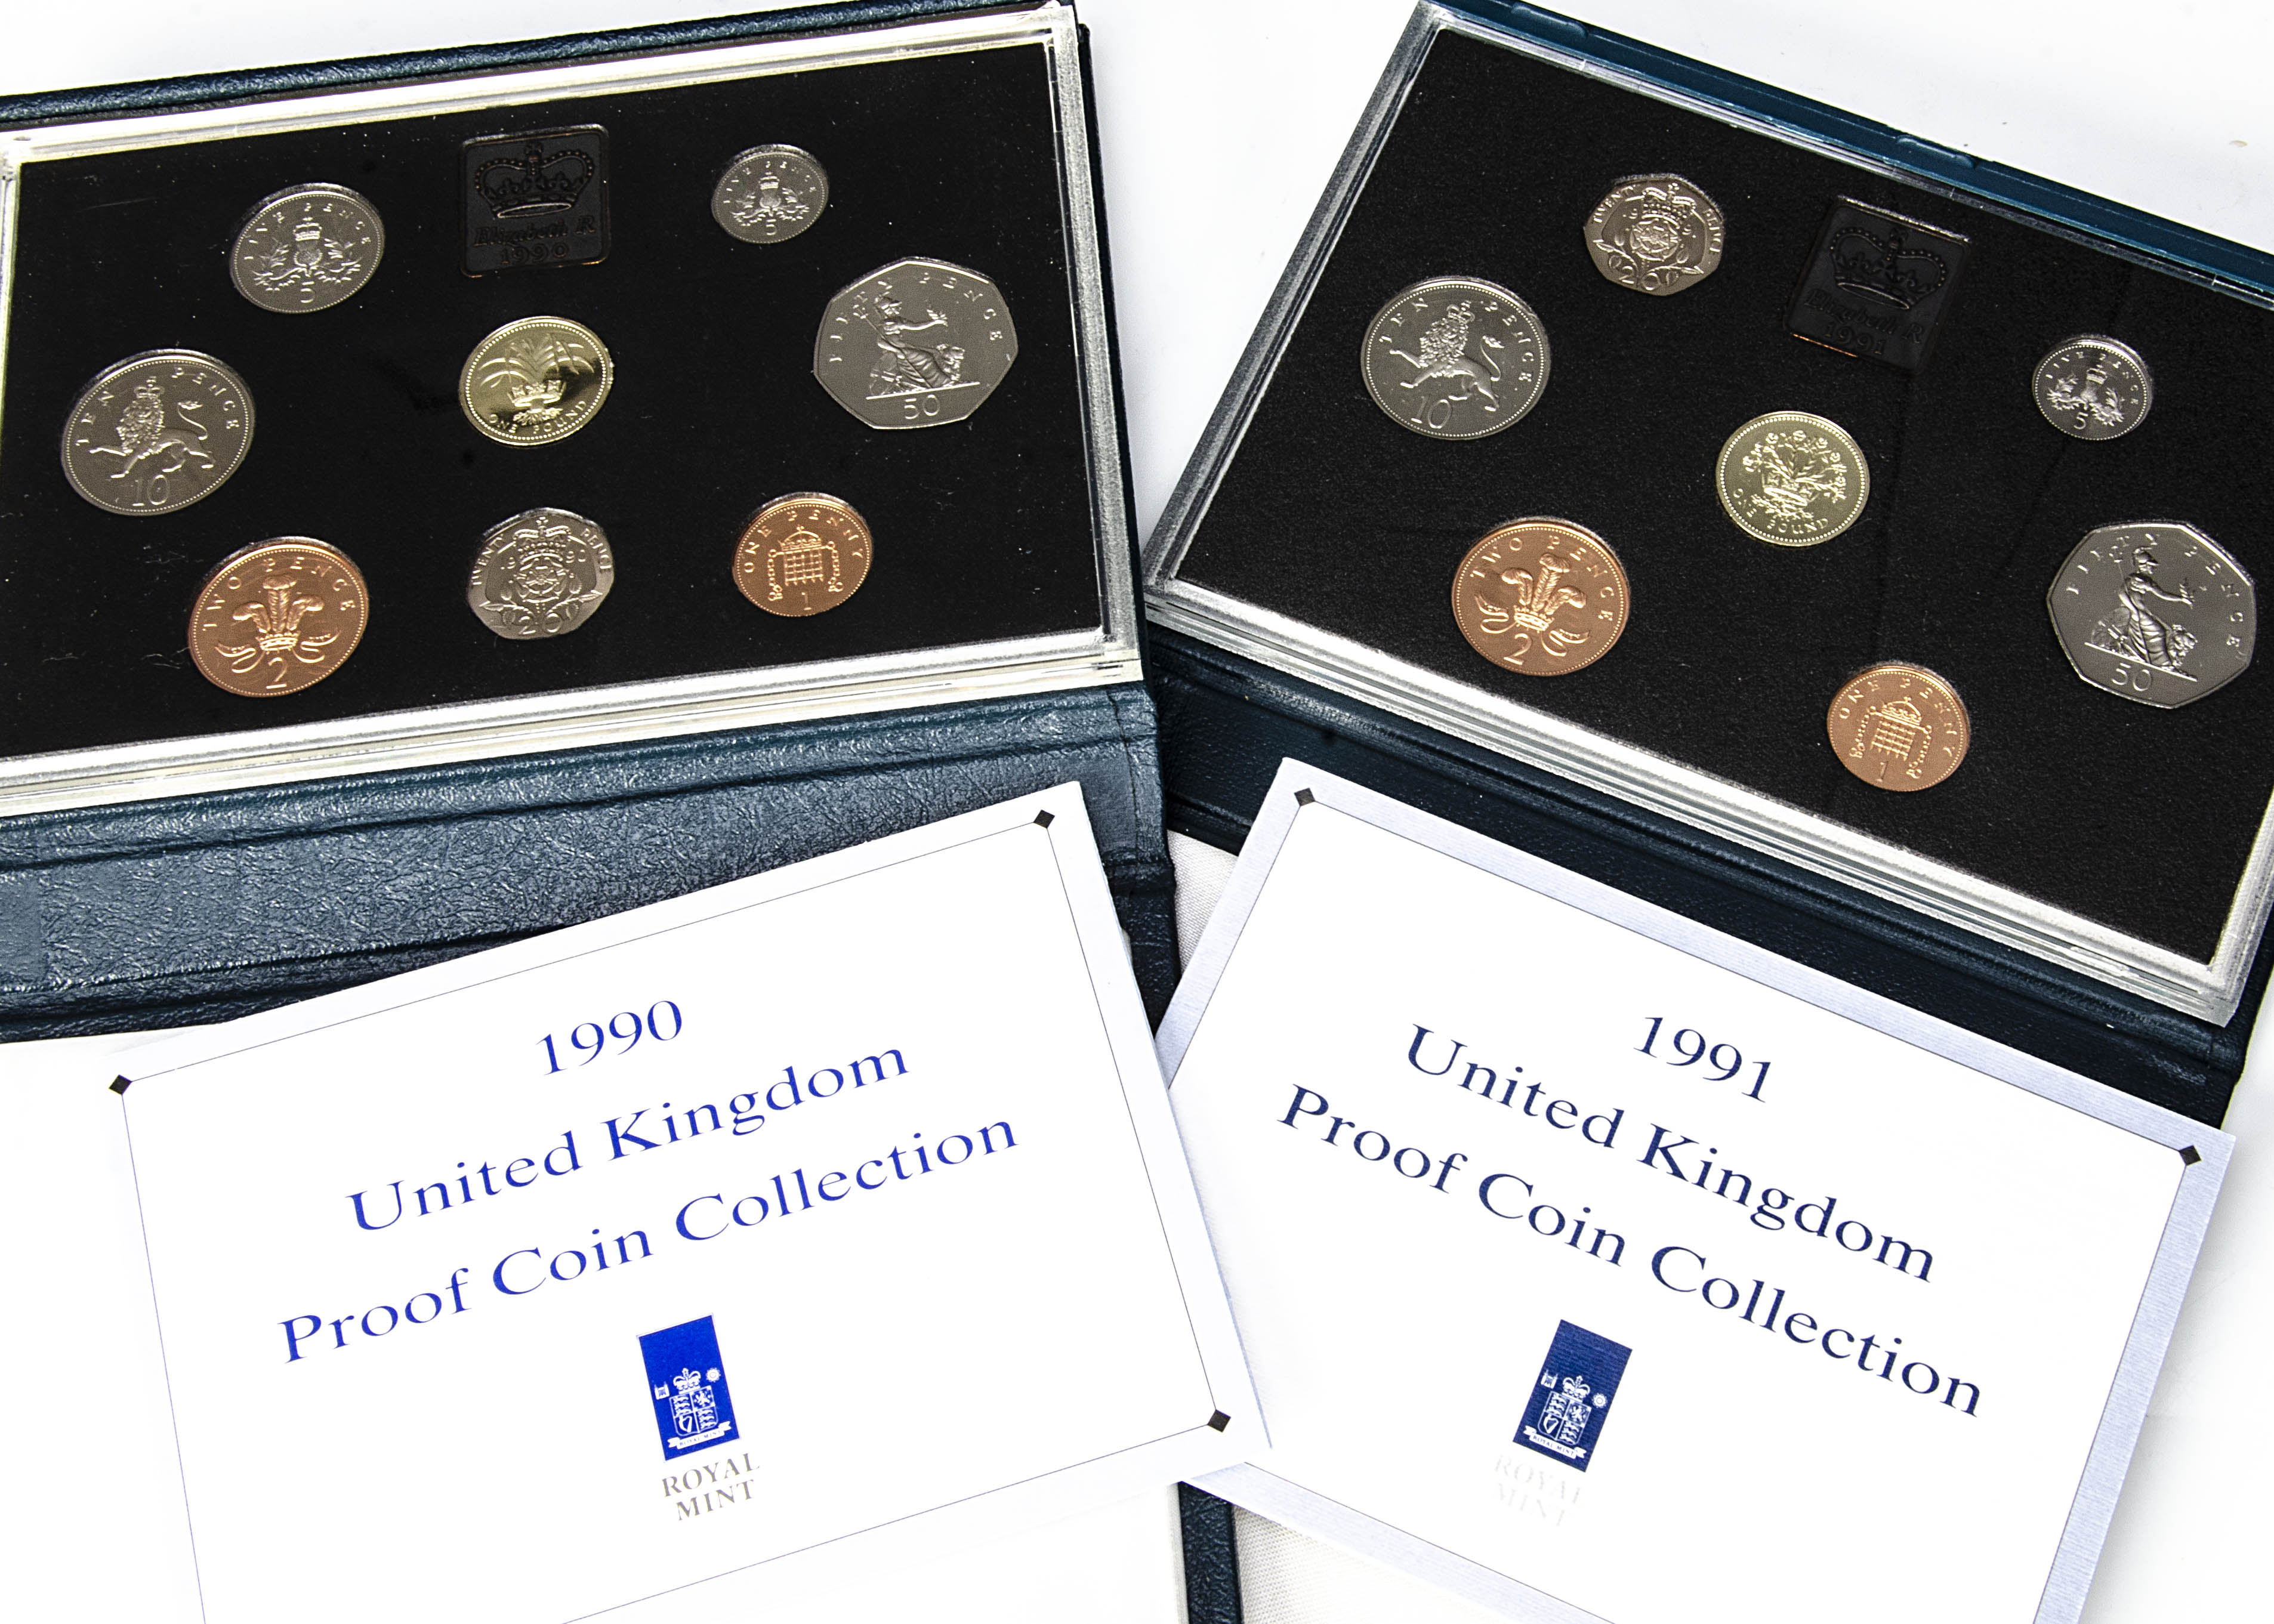 A set of ten Royal Mint UK proof coin sets, a run from 1990 to 1999, appear unopened, with year